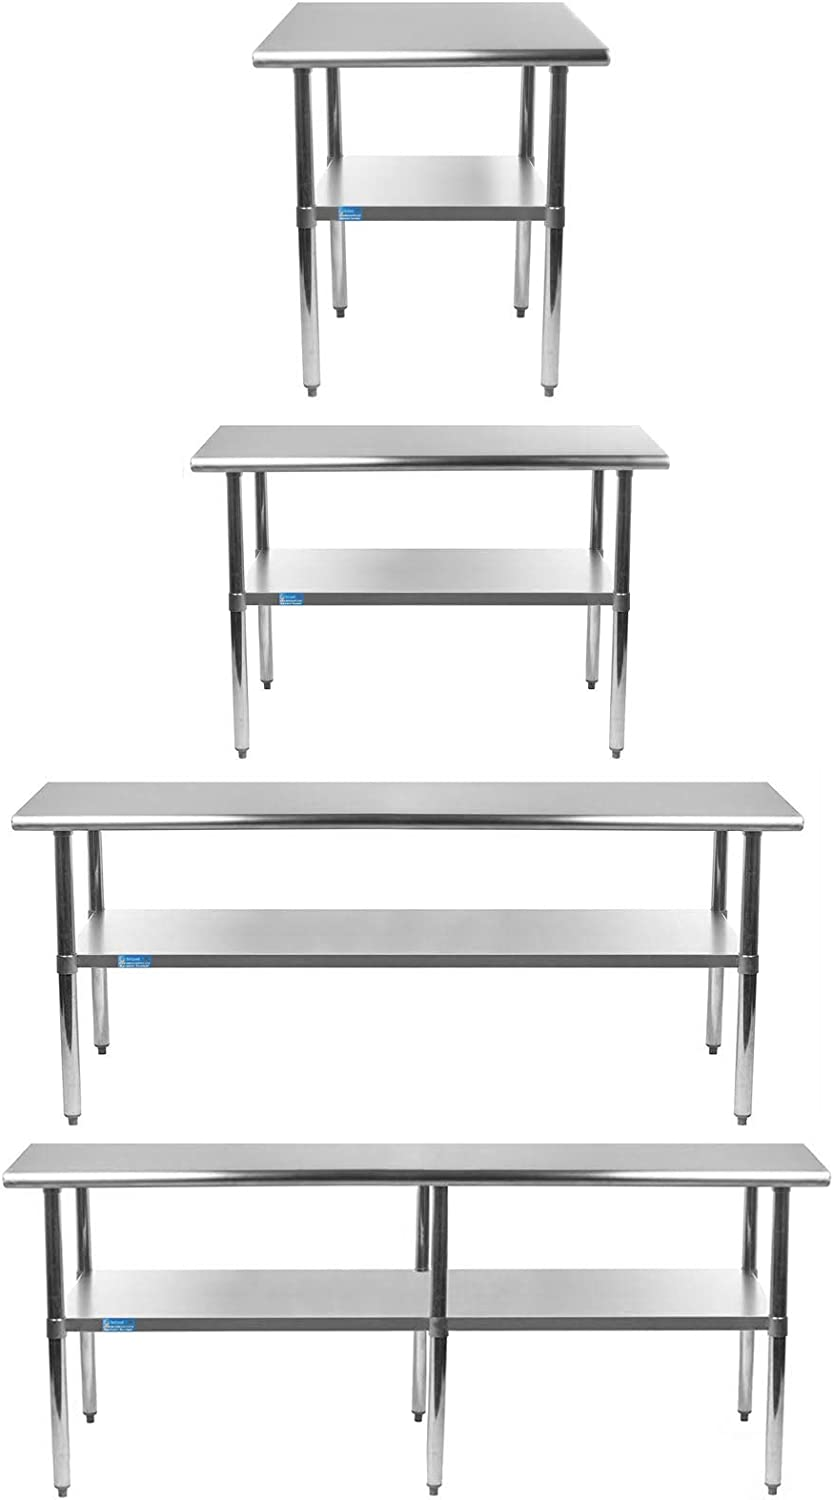 Stainless Steel Table+ Optional Casters From Siz 70% OFF Outlet 43 Choose Deluxe